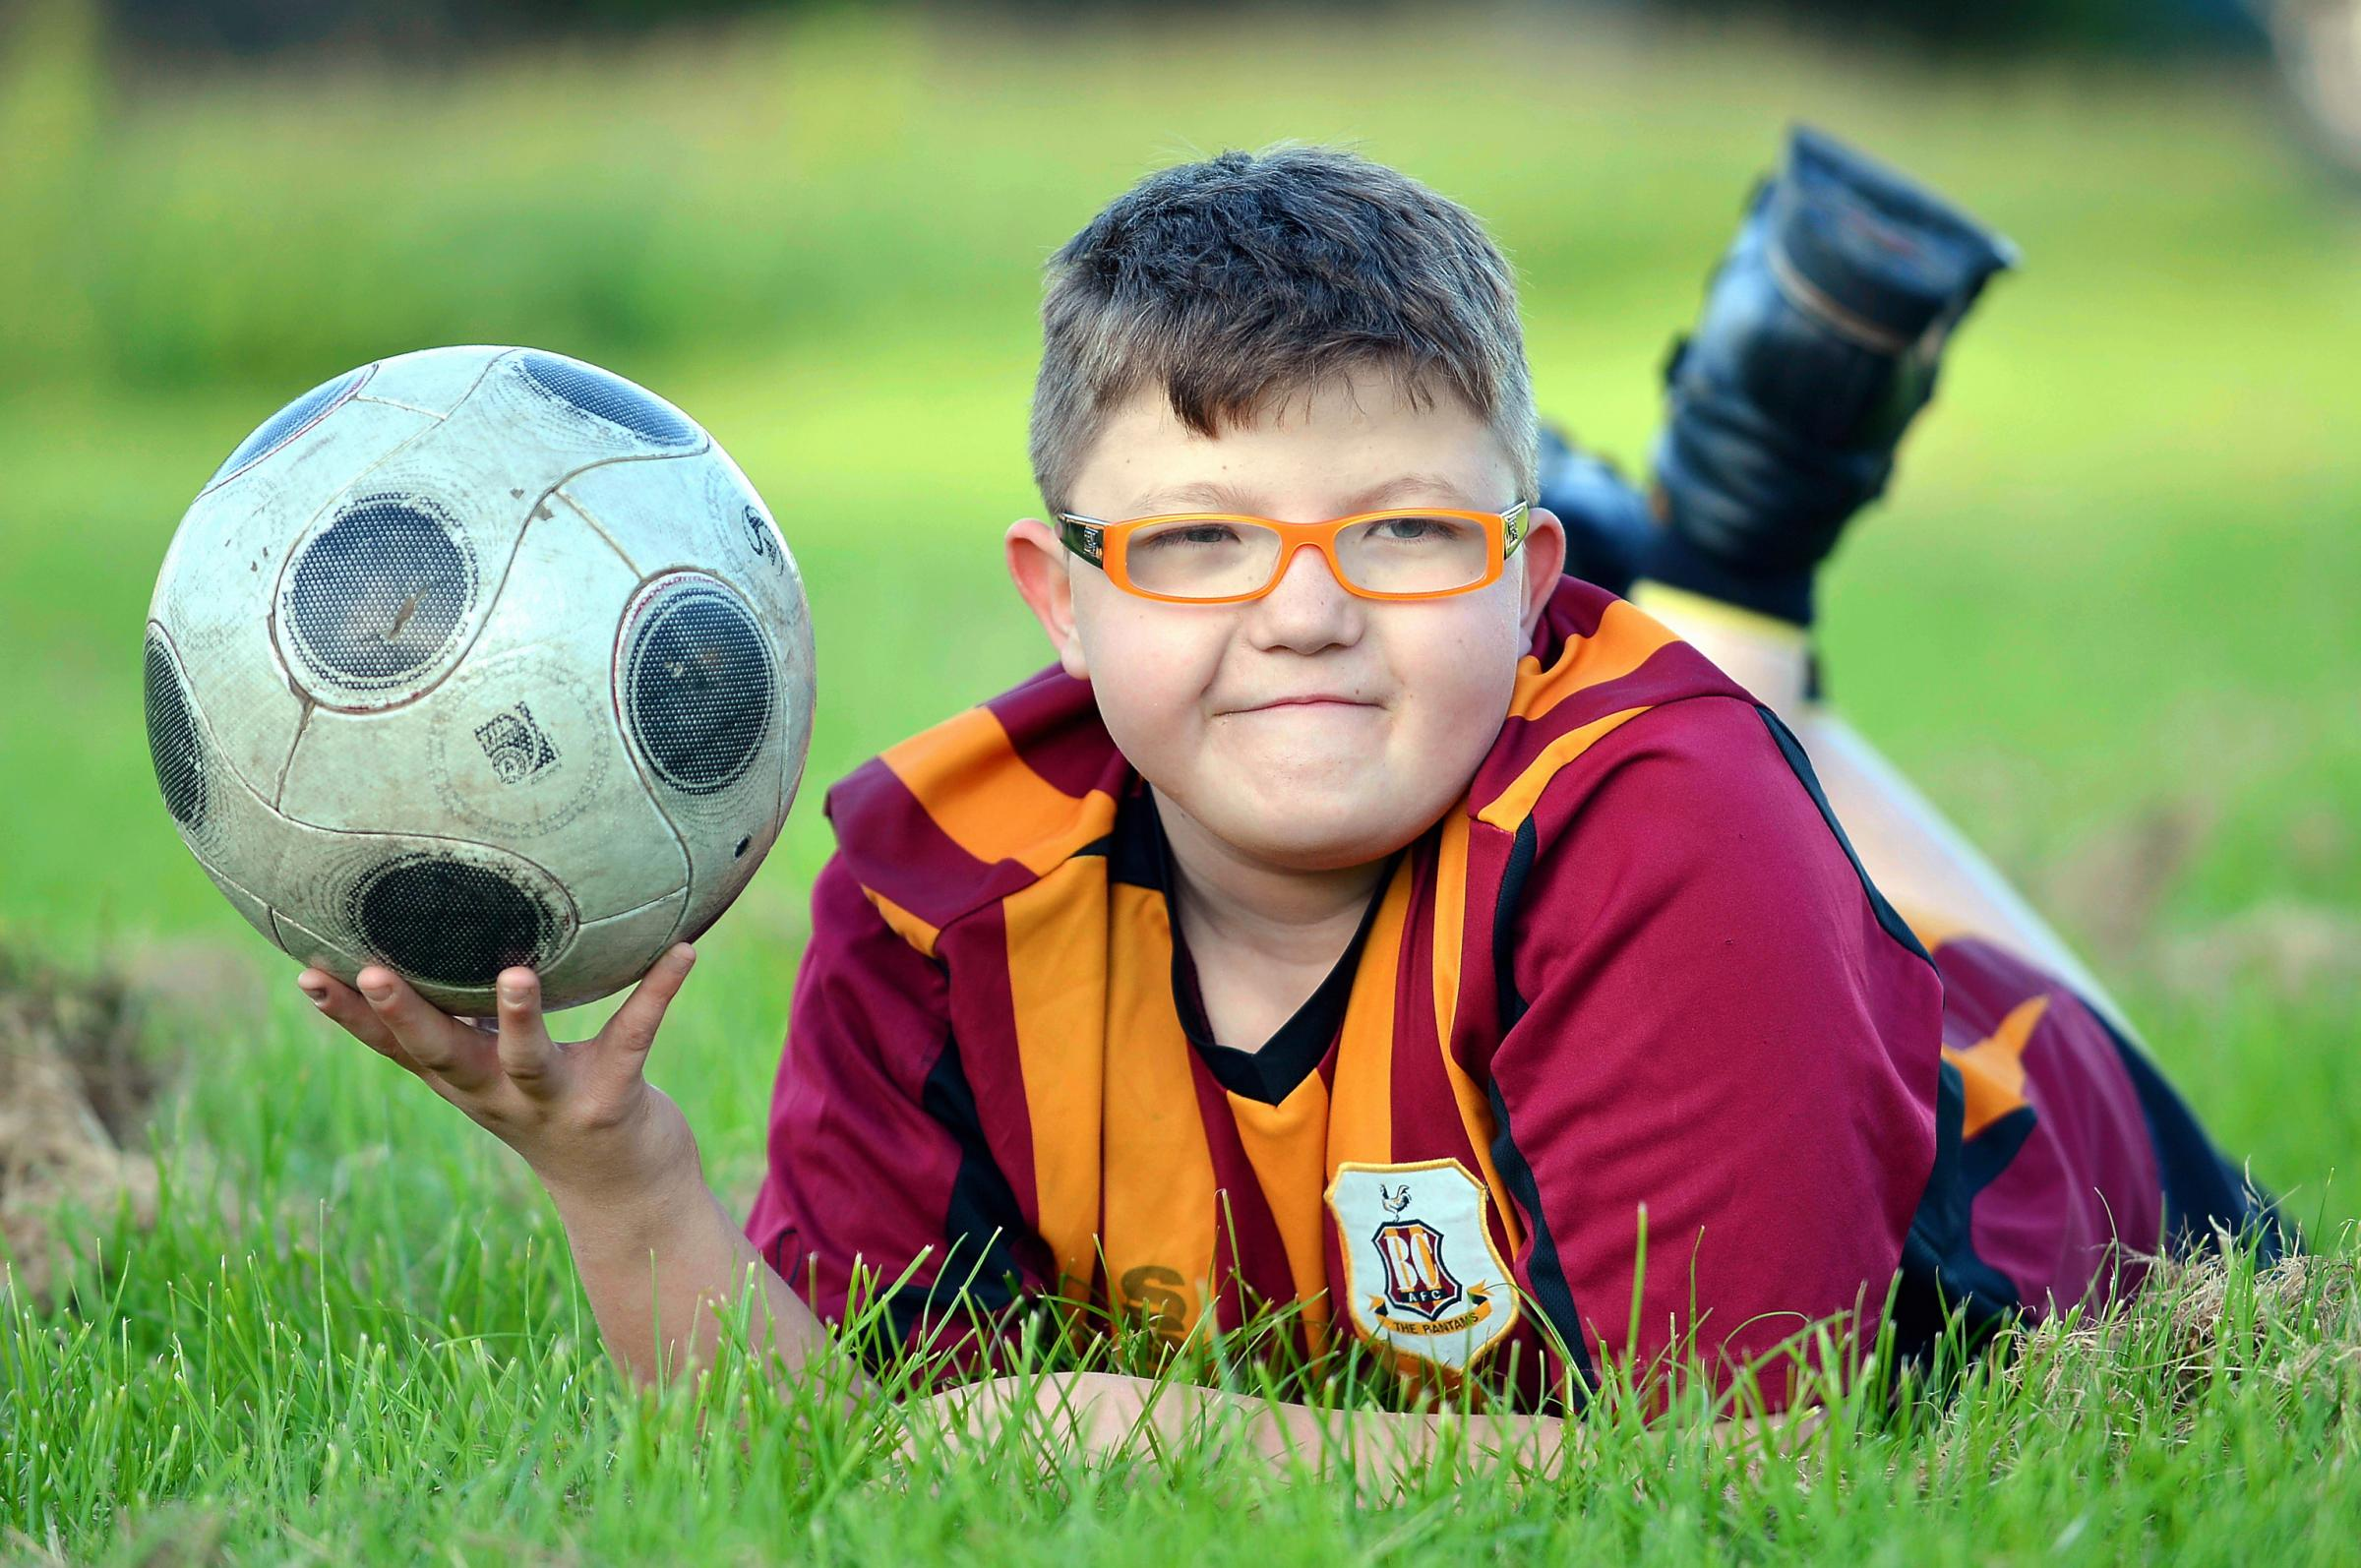 Footy-mad Joshua Turpin from Clayton, has defied medical opinion to reach his 13th birthday